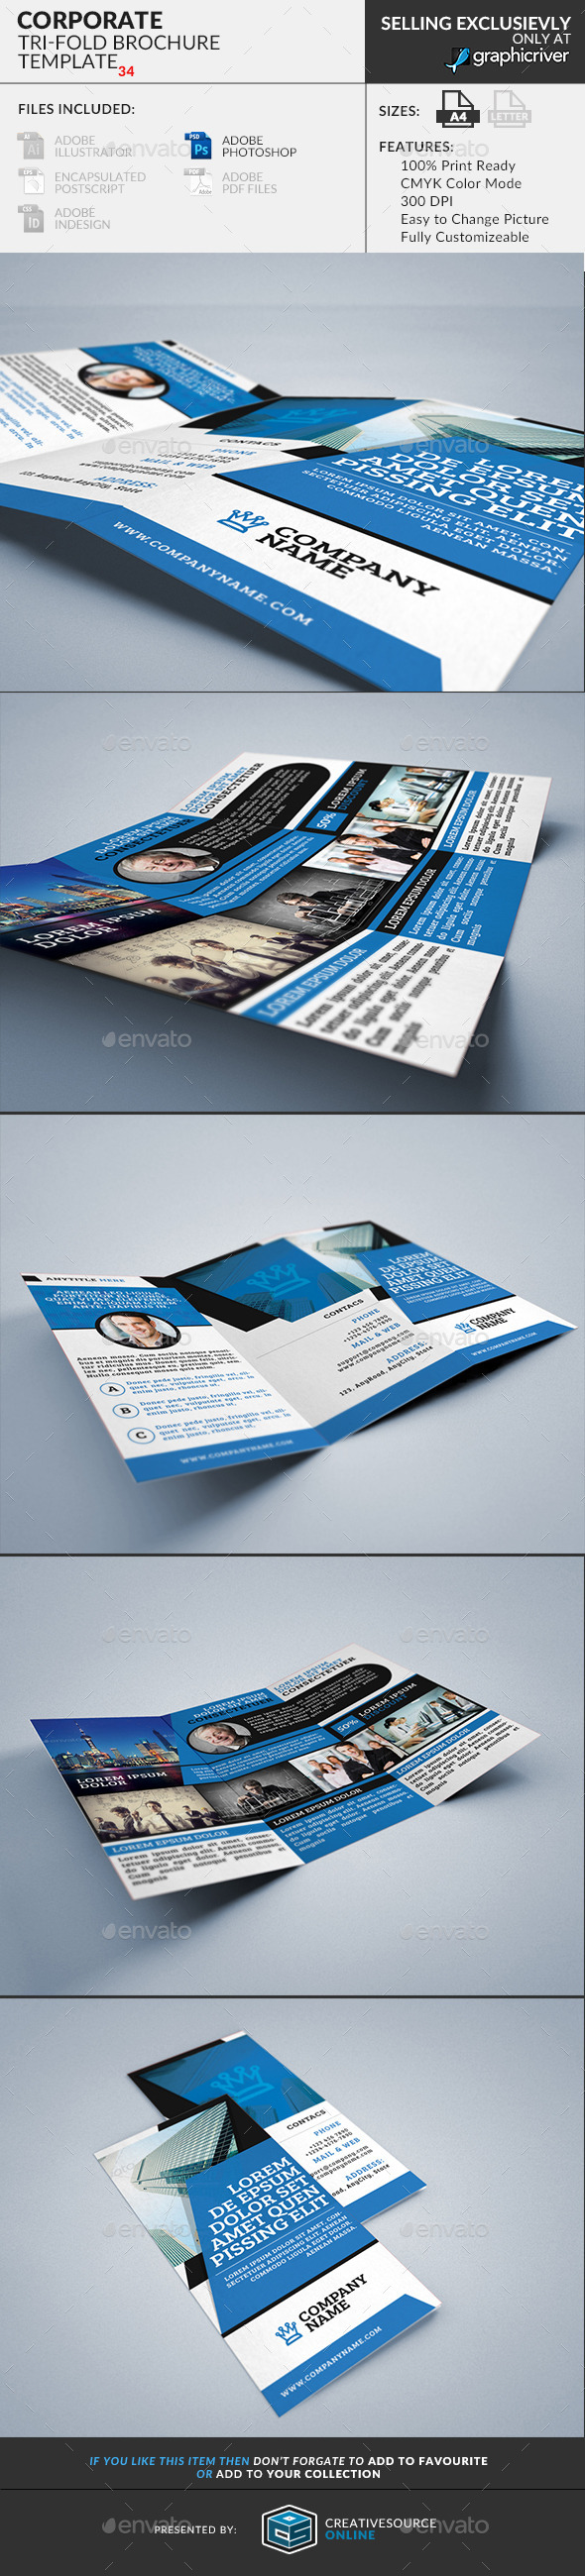 Trifold Brochure 34: Corporate - Corporate Brochures